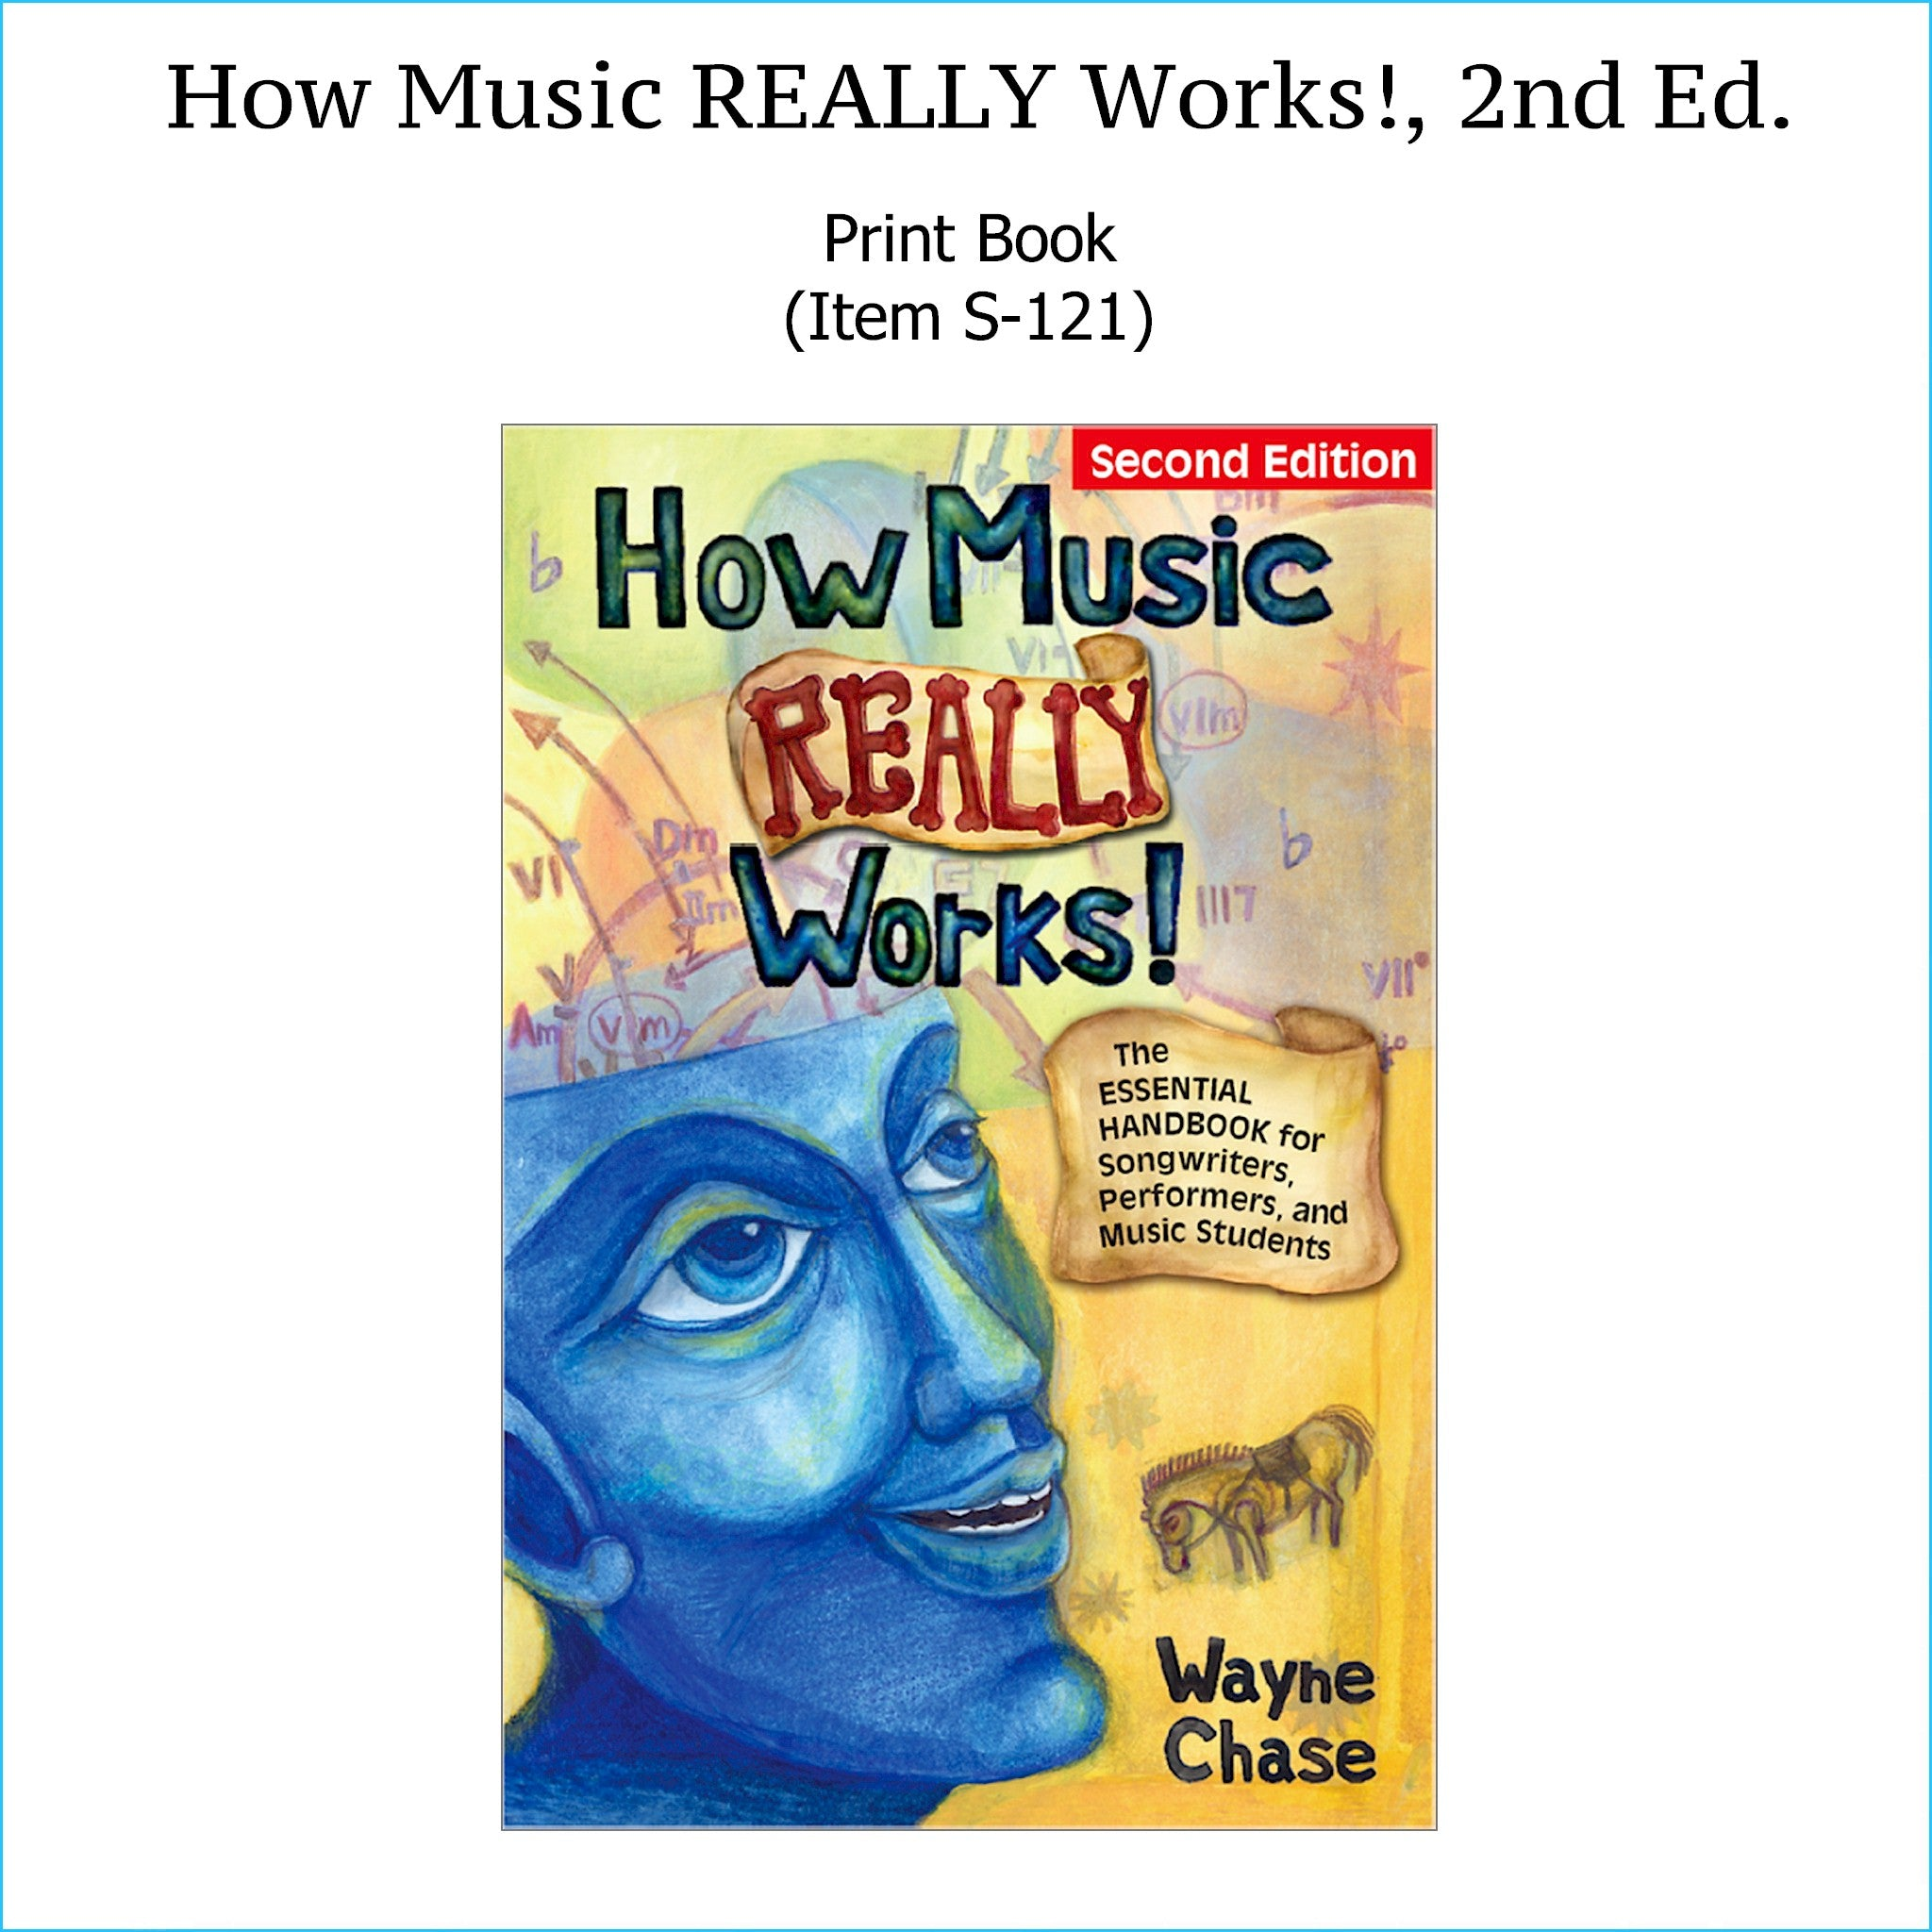 How Music Really Works by Wayne Chase, Second Edition